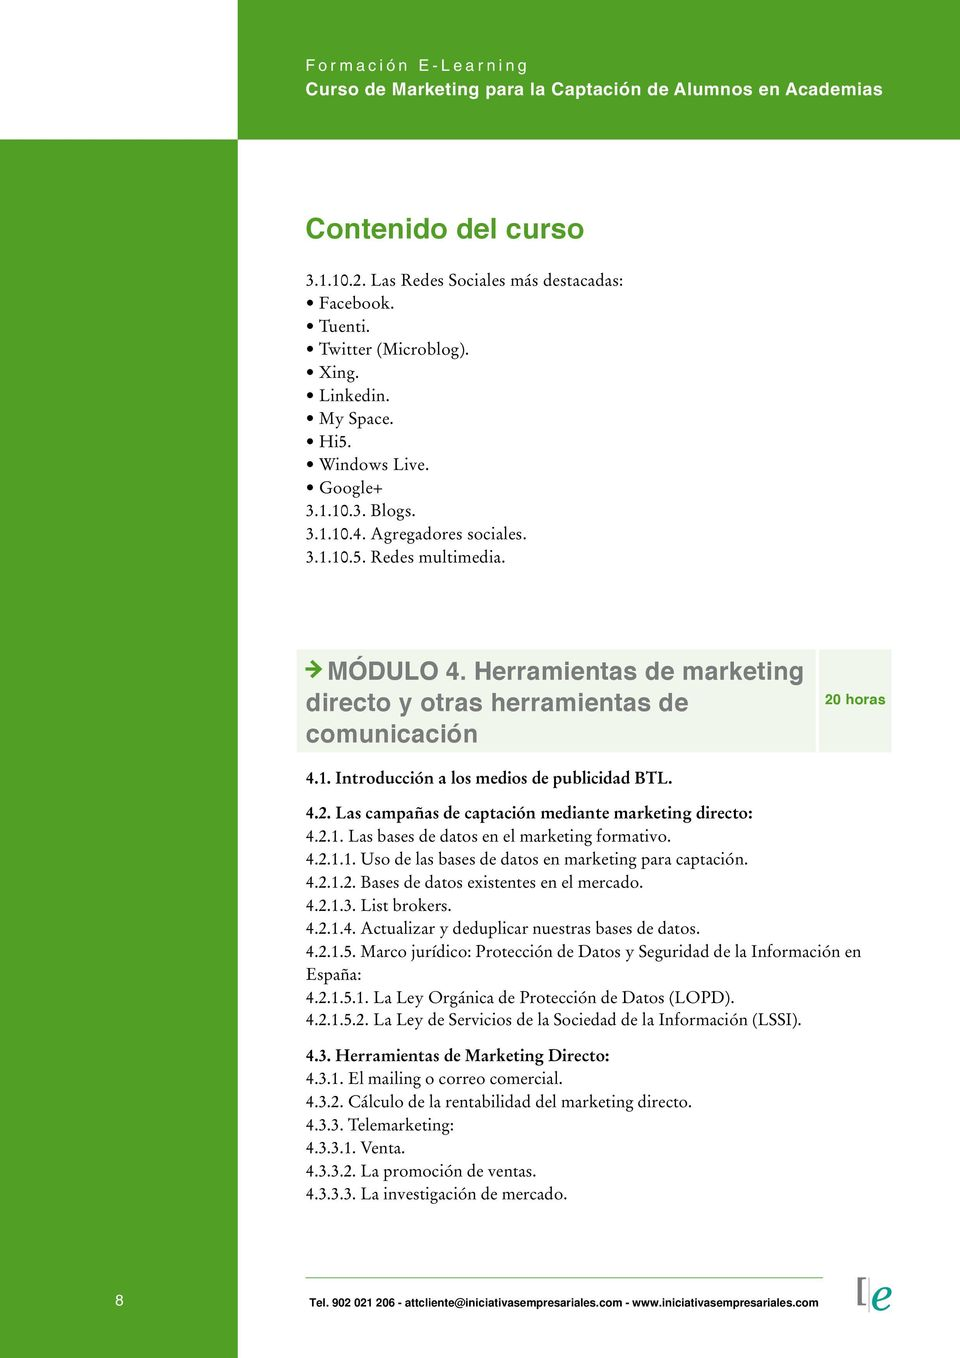 2.1. Las bases de datos en el marketing formativo. 4.2.1.1. Uso de las bases de datos en marketing para captación. 4.2.1.2. Bases de datos existentes en el mercado. 4.2.1.3. List brokers. 4.2.1.4. Actualizar y deduplicar nuestras bases de datos.